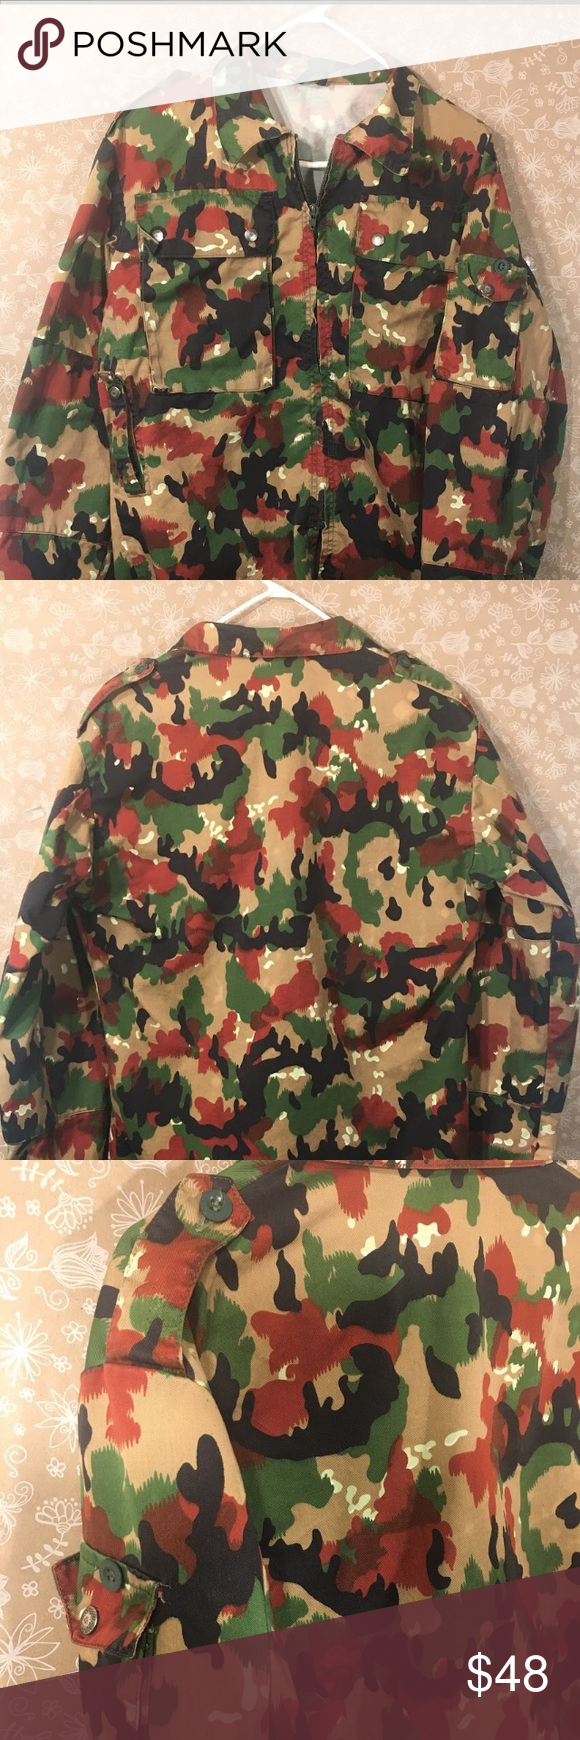 ef2d975e36b91 Camouflage Swiss Military 80s Vintage Field Jacket The Swiss Army m83  Alpenflage camouflage Jacket size L